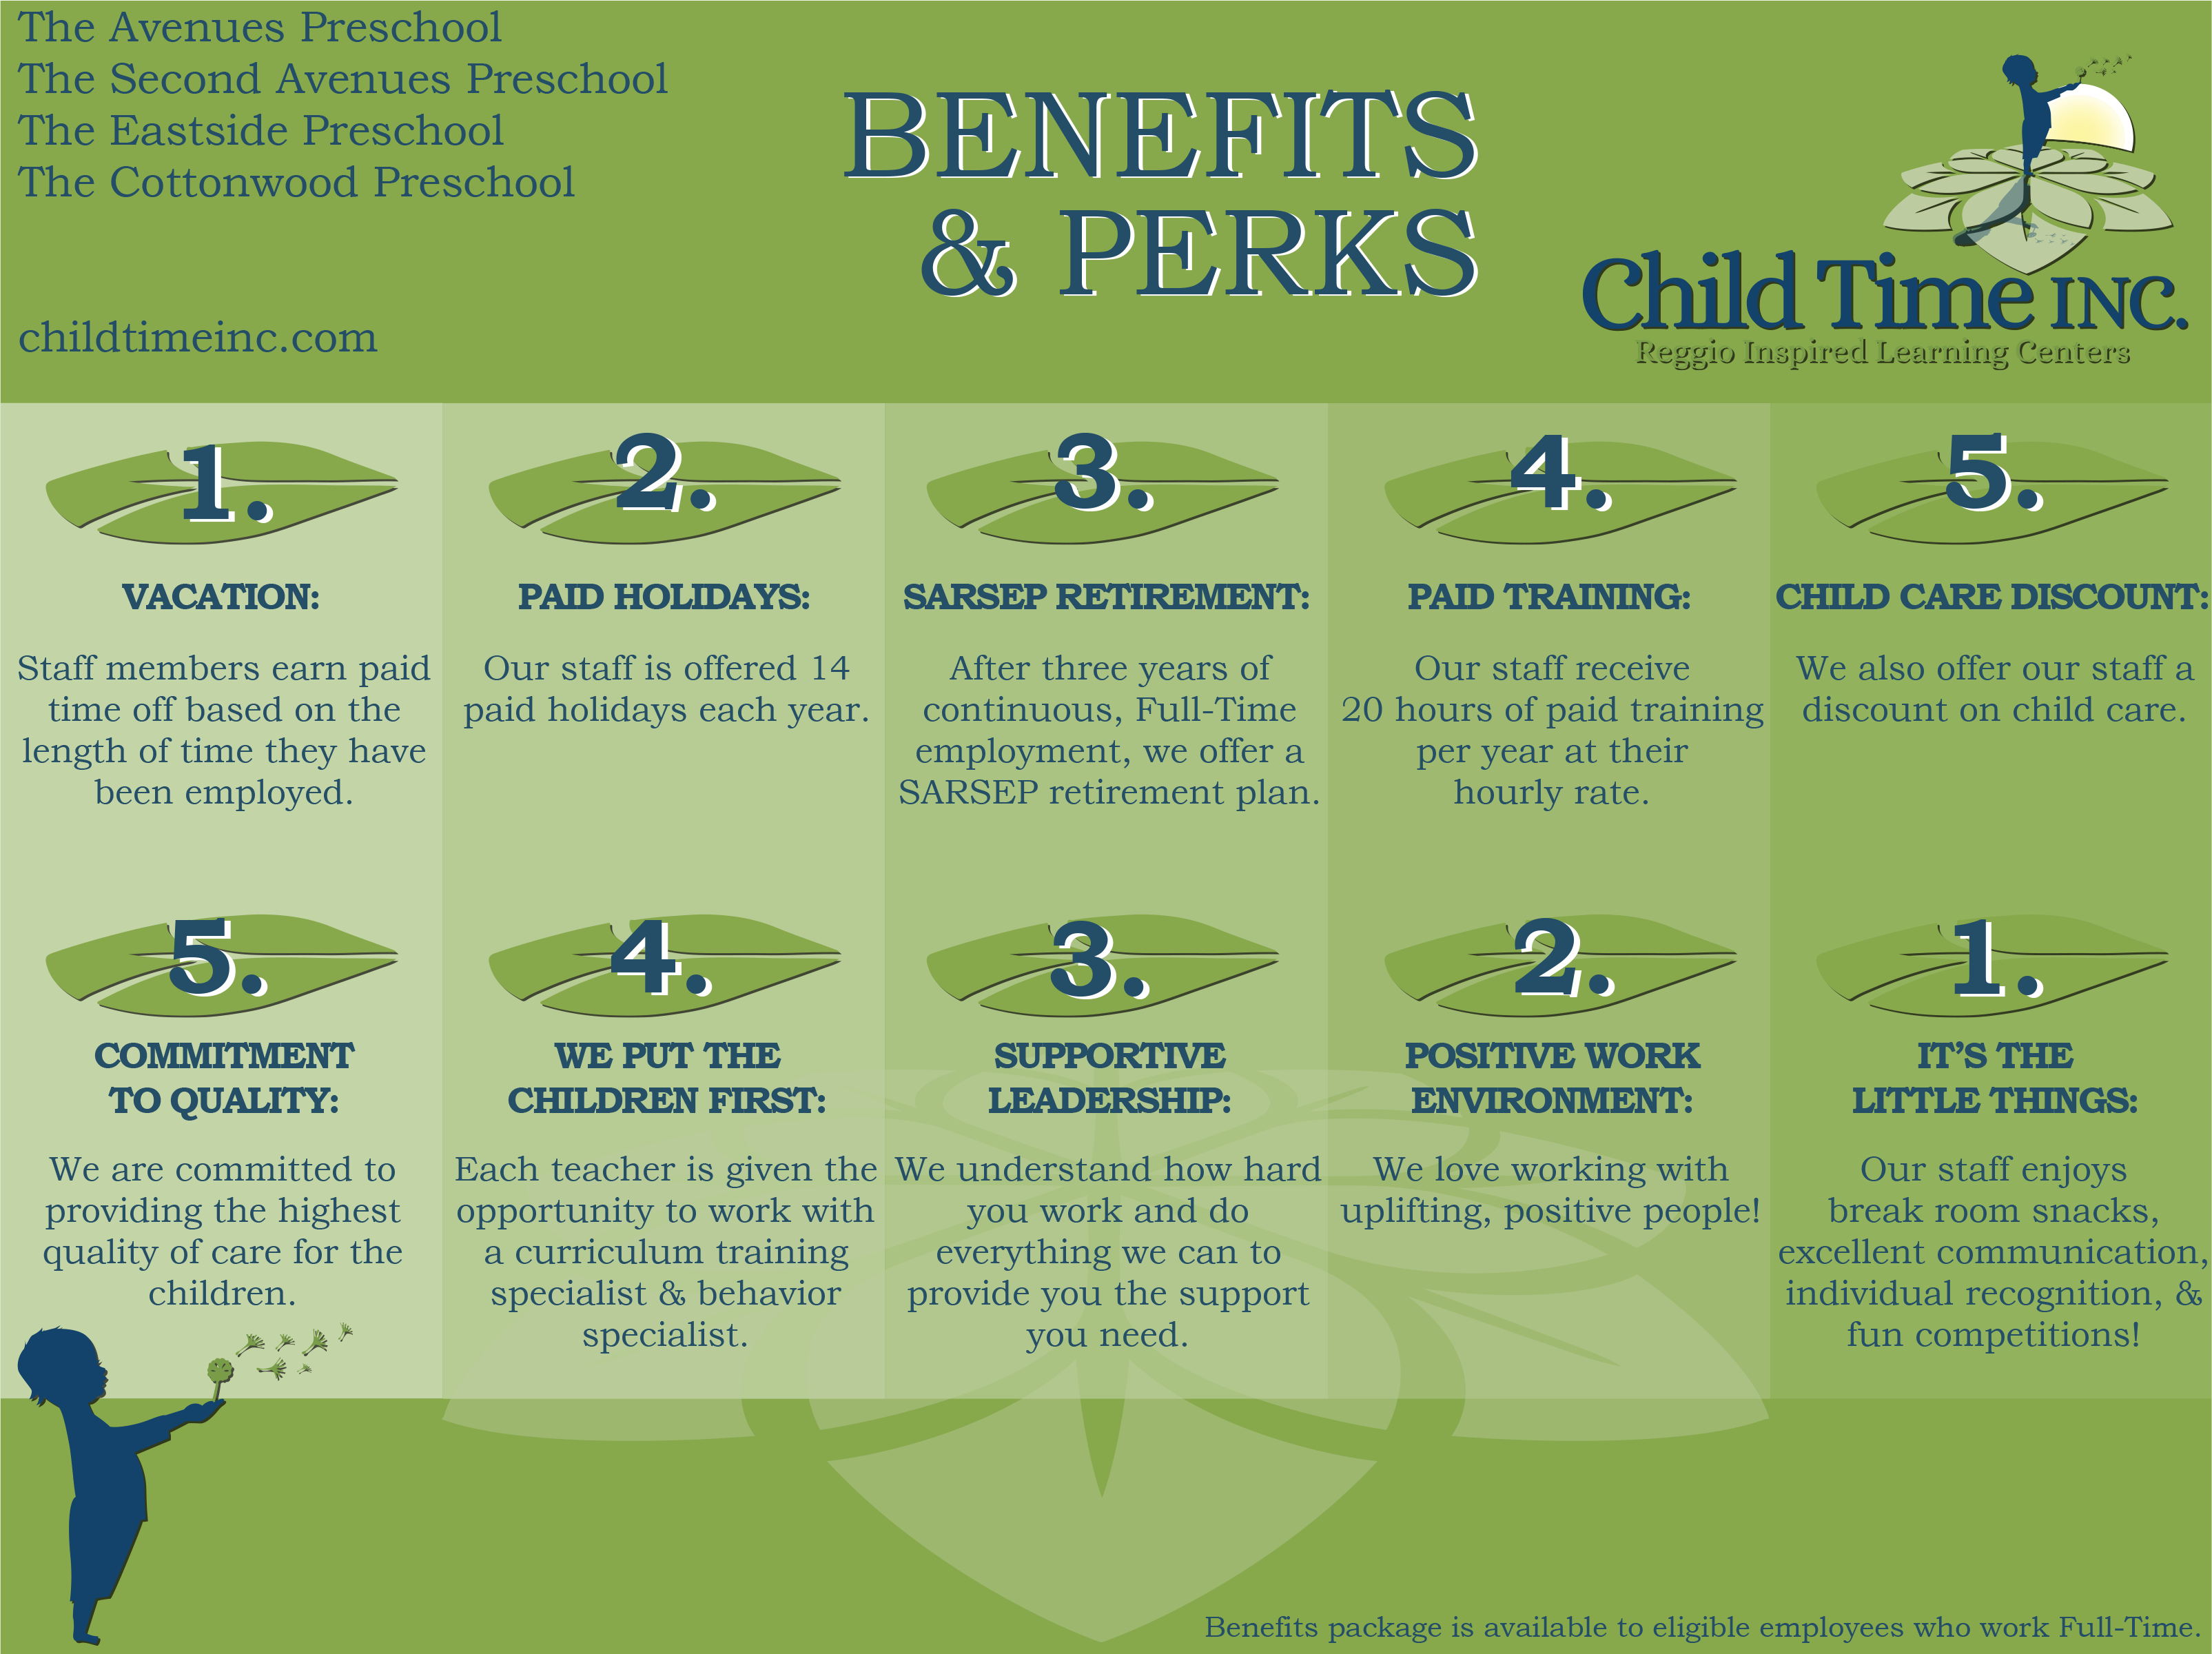 Child Time Employee Benefits and Perks Flyer